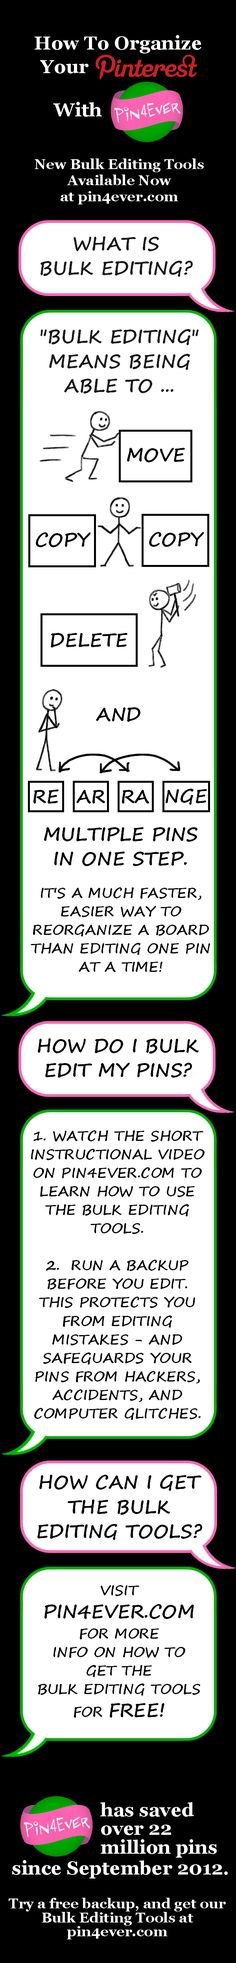 Organize your Pinterest boards the fast and easy way. Pin4Ever has saved, edited and uploaded more than 52 million pins since September 2012. Visit pin4ever.com to try it free for a week!